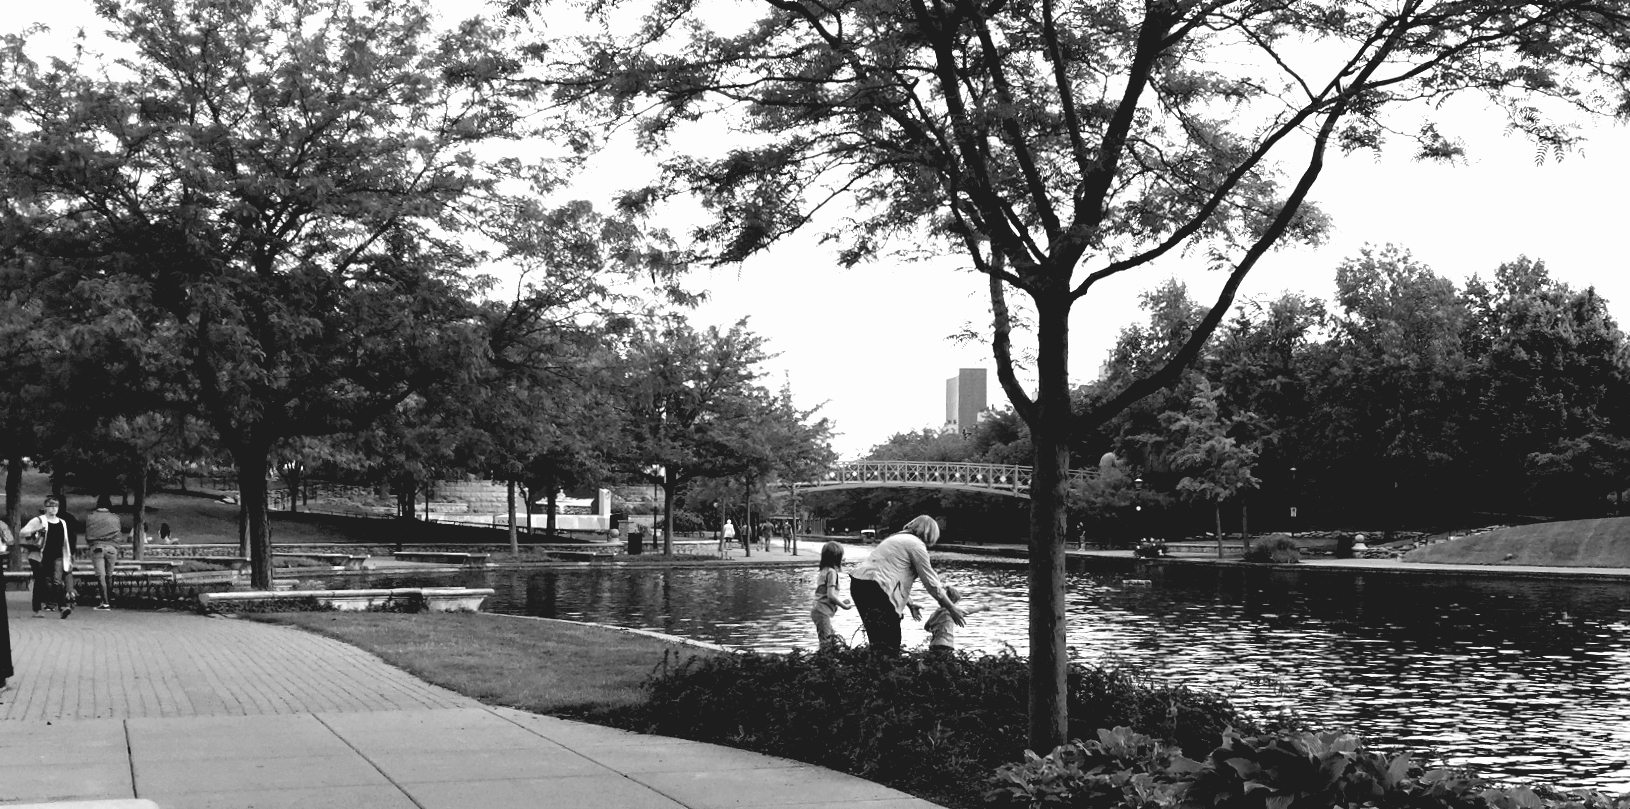 The downtown Indianapolis Canal Walk is a great place for feeding ducks, as well as paddle boating, kayaking, gondola rides, running, walking and biking.